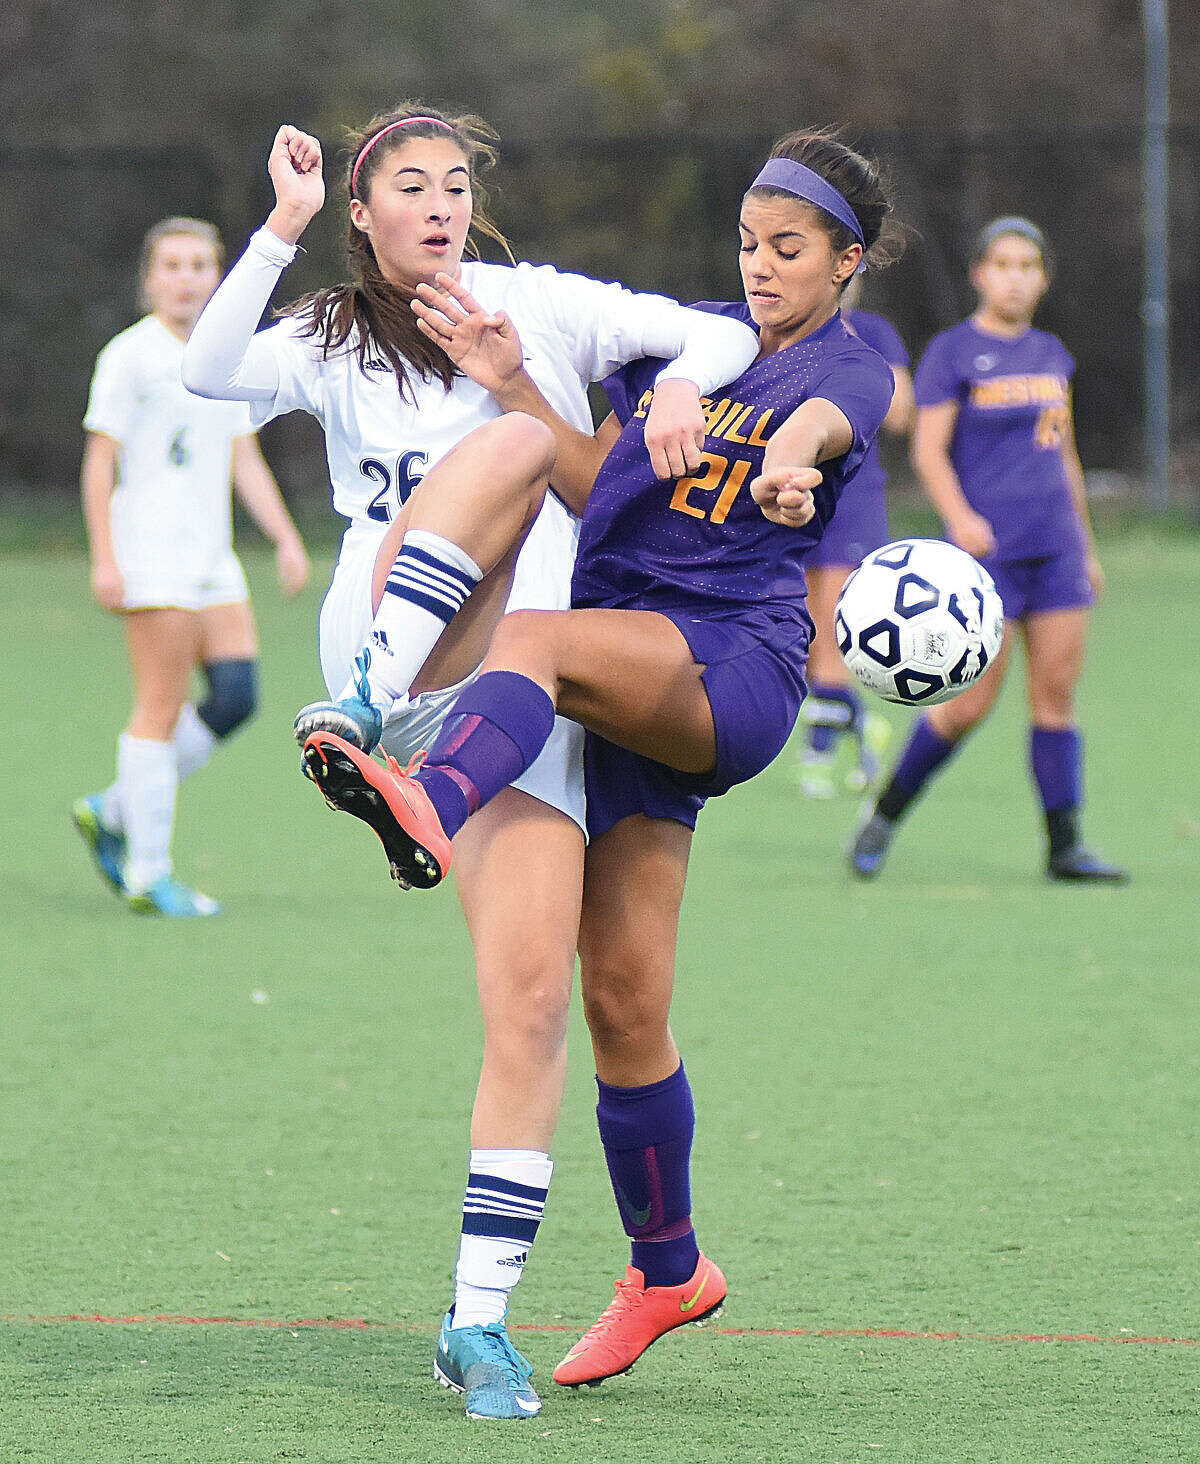 Hour photo/John Nash Wilton's Ashley Vitarelli and Westhill's Nicole Pipera fight for the ball on Monday.